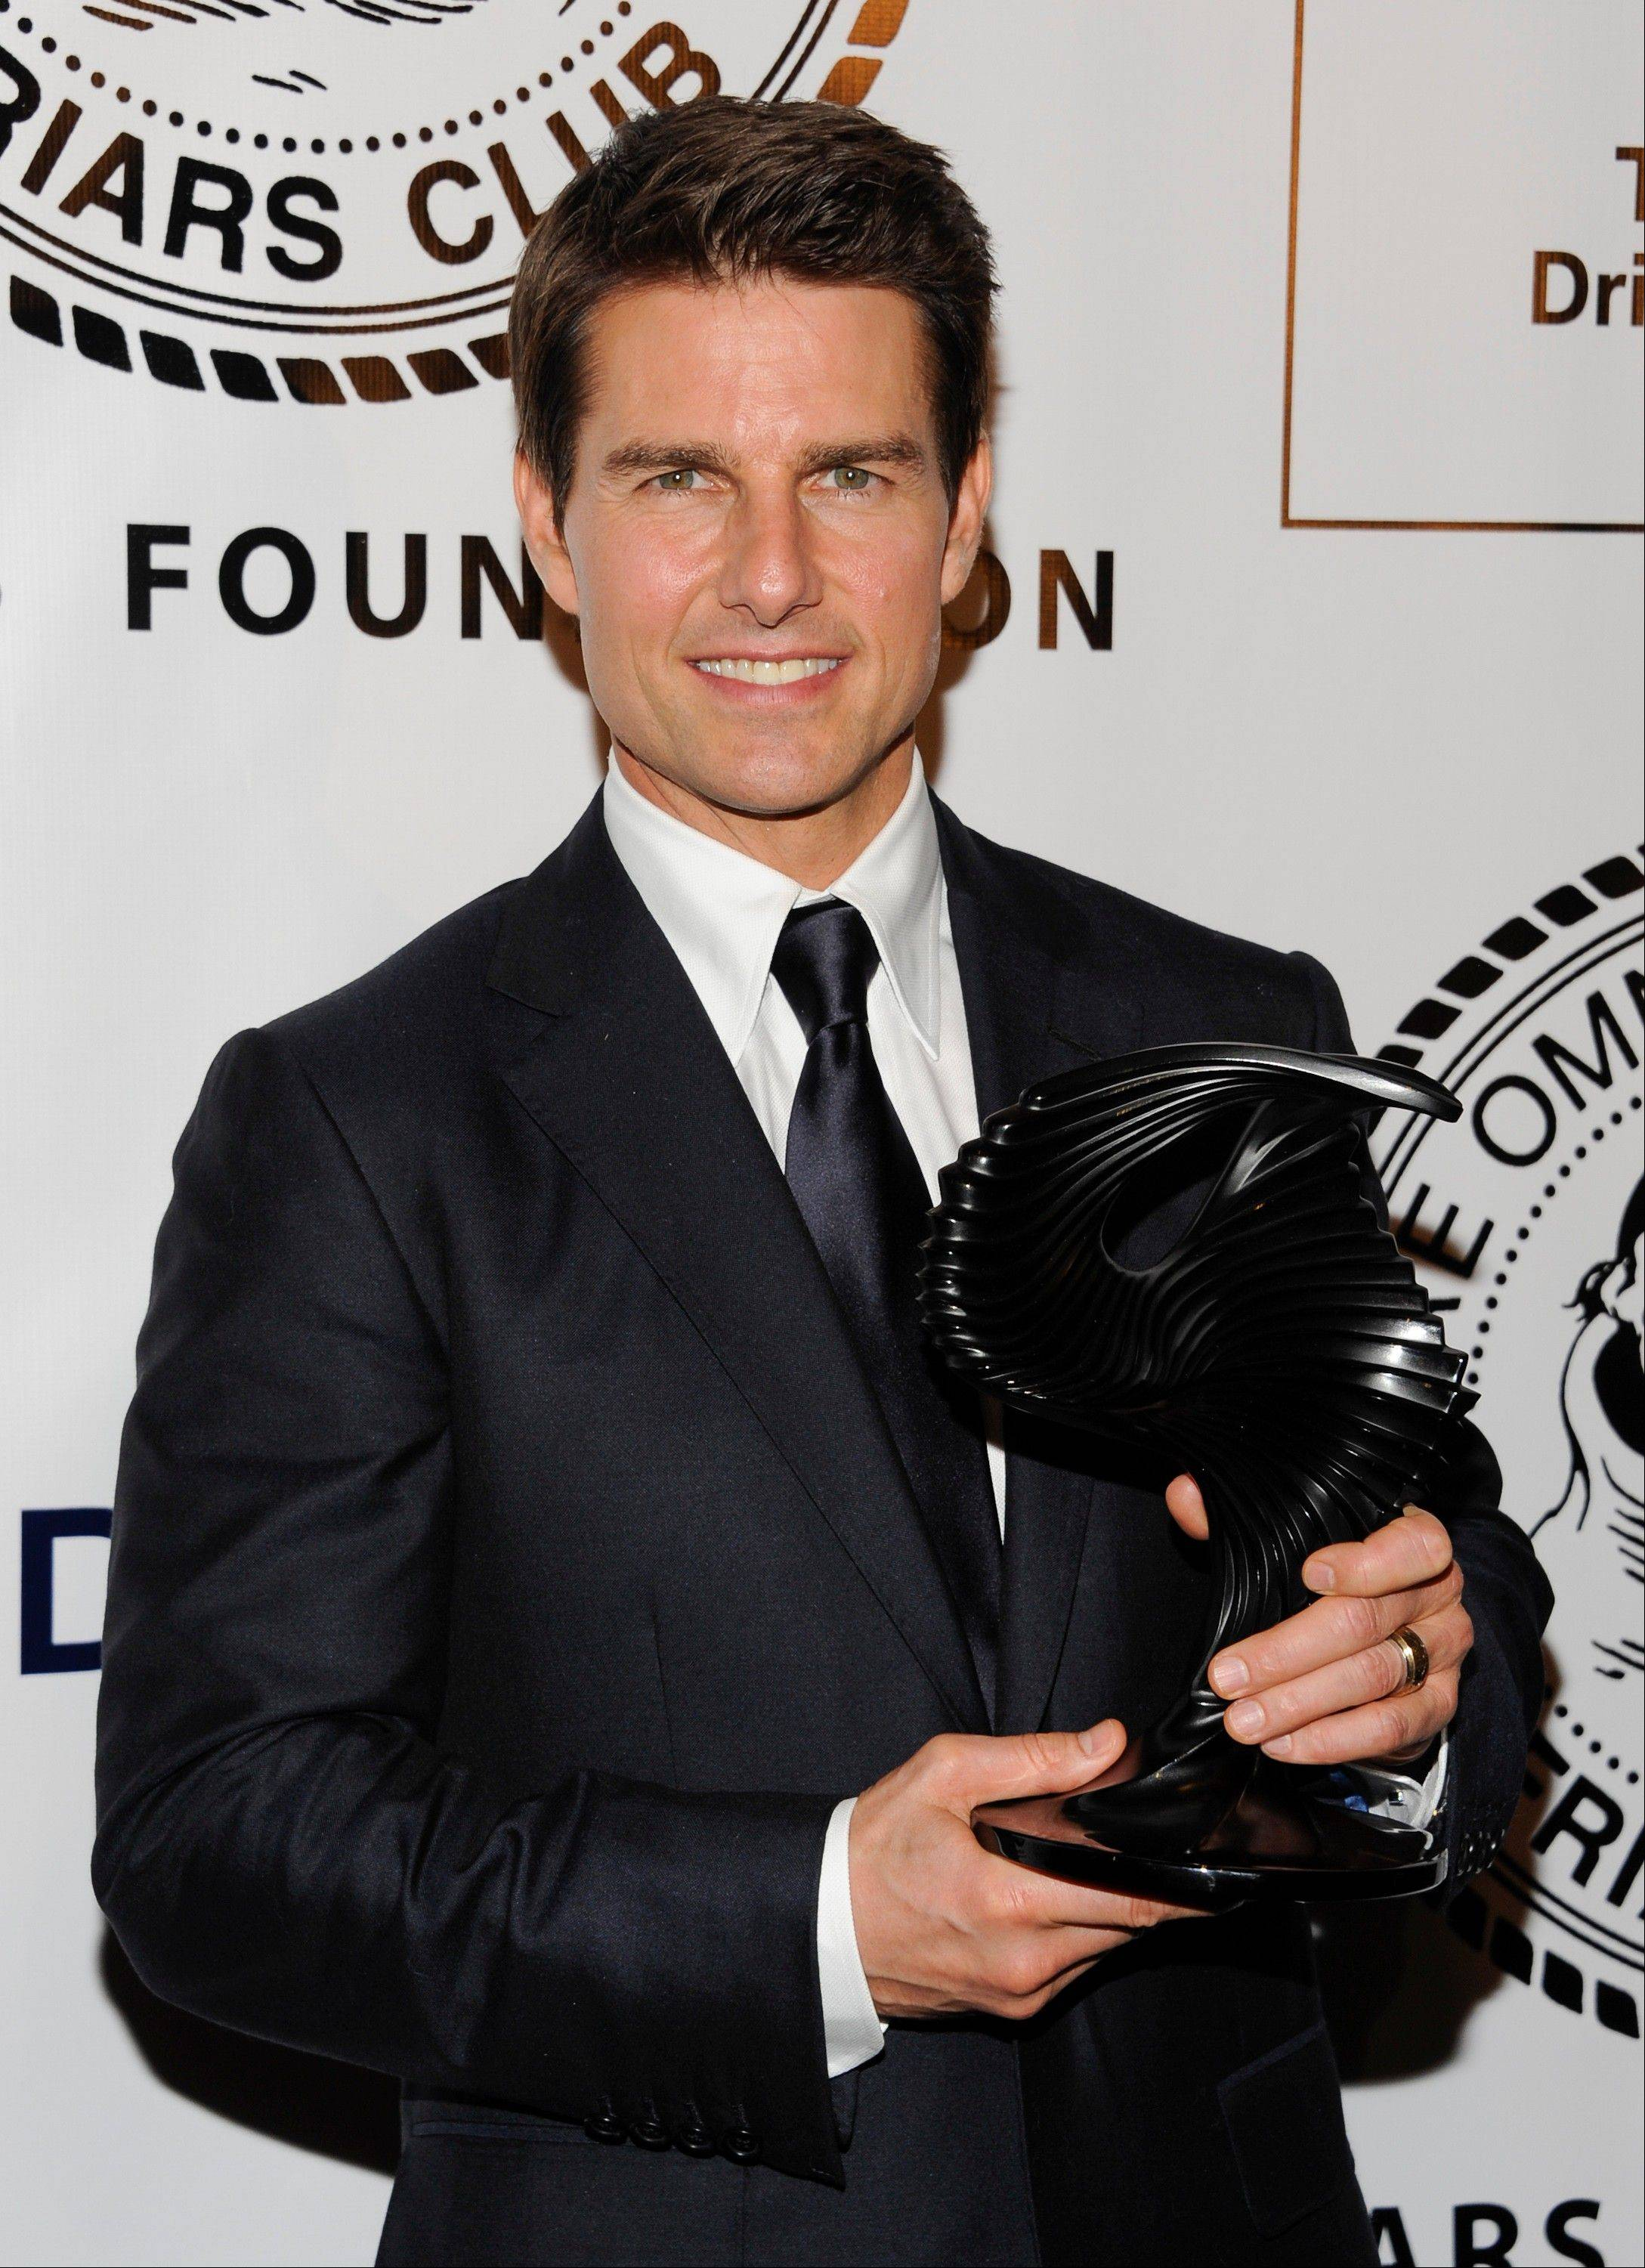 Tom Cruise he has filed a $50 million defamation lawsuit against the publishers of Life & Style magazine for articles that said the actor has abandoned his 6-year-old daughter, Suri.